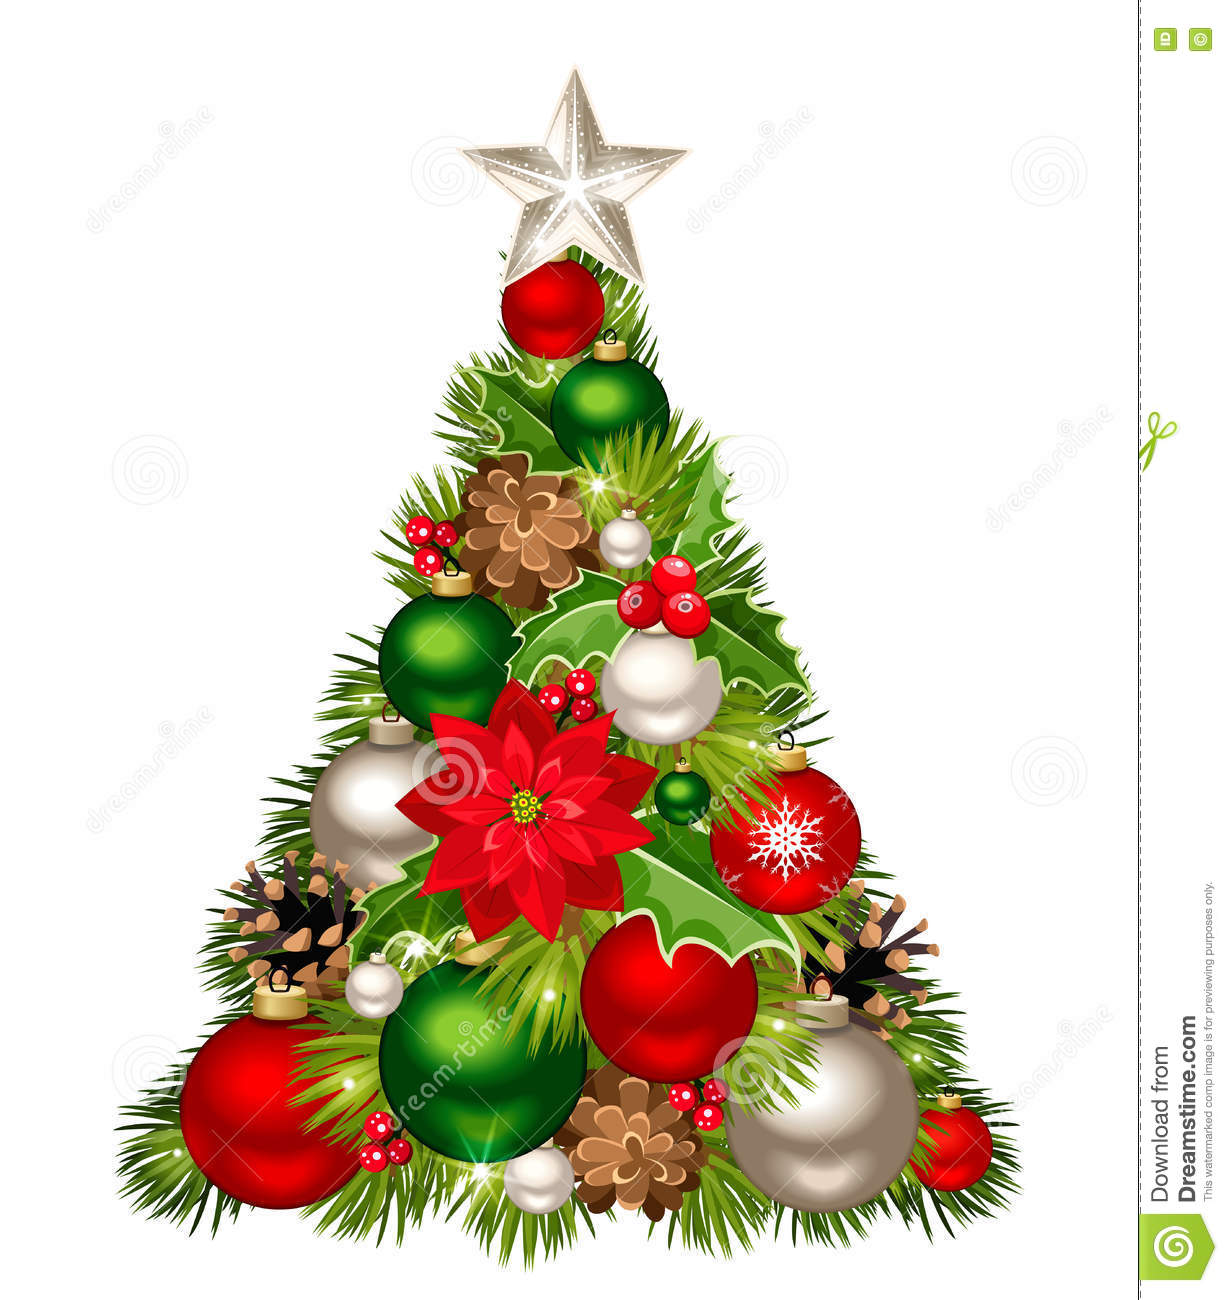 download christmas tree with red green and silver decorations vector illustration stock vector - Green And Silver Christmas Decorations